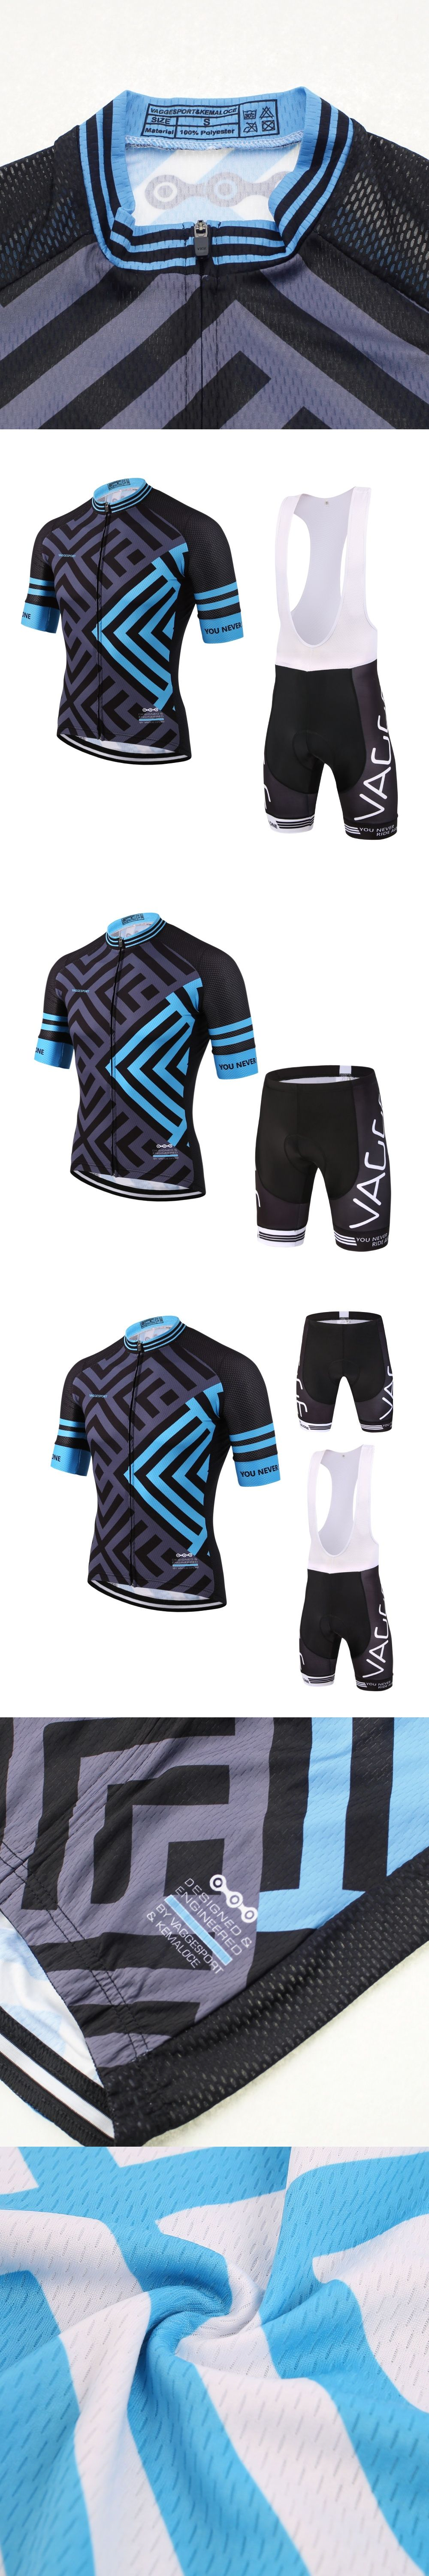 2017 blue outdoor professional cycling wear jersey men breathable cycle  bike clothes short sleeve f6b2e03a5